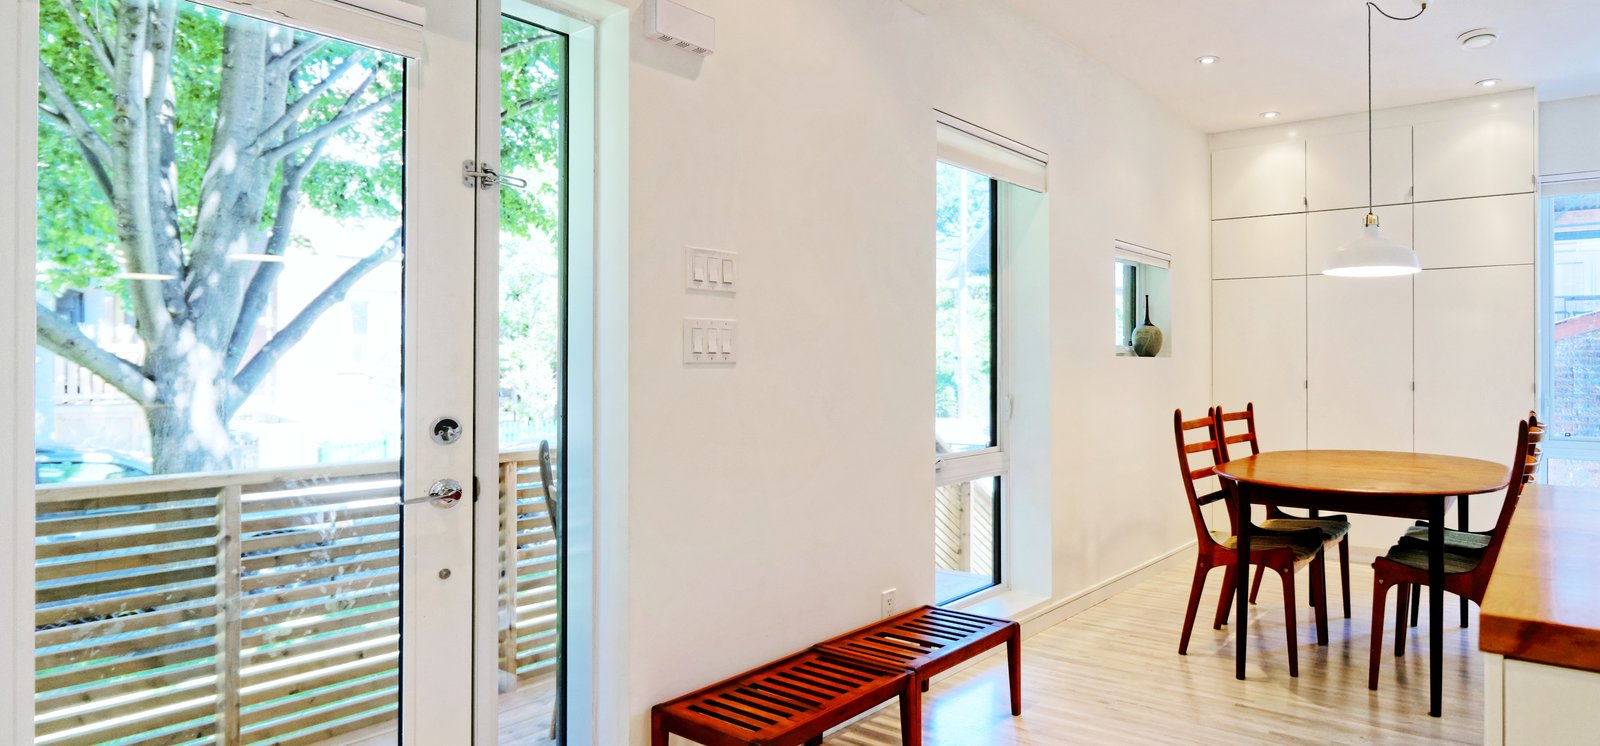 Bench, Ceiling Lighting, Light Hardwood Floor, Dining Room, Table, Chair, and Storage Our House - Front Door  Our House by Solares Architecture